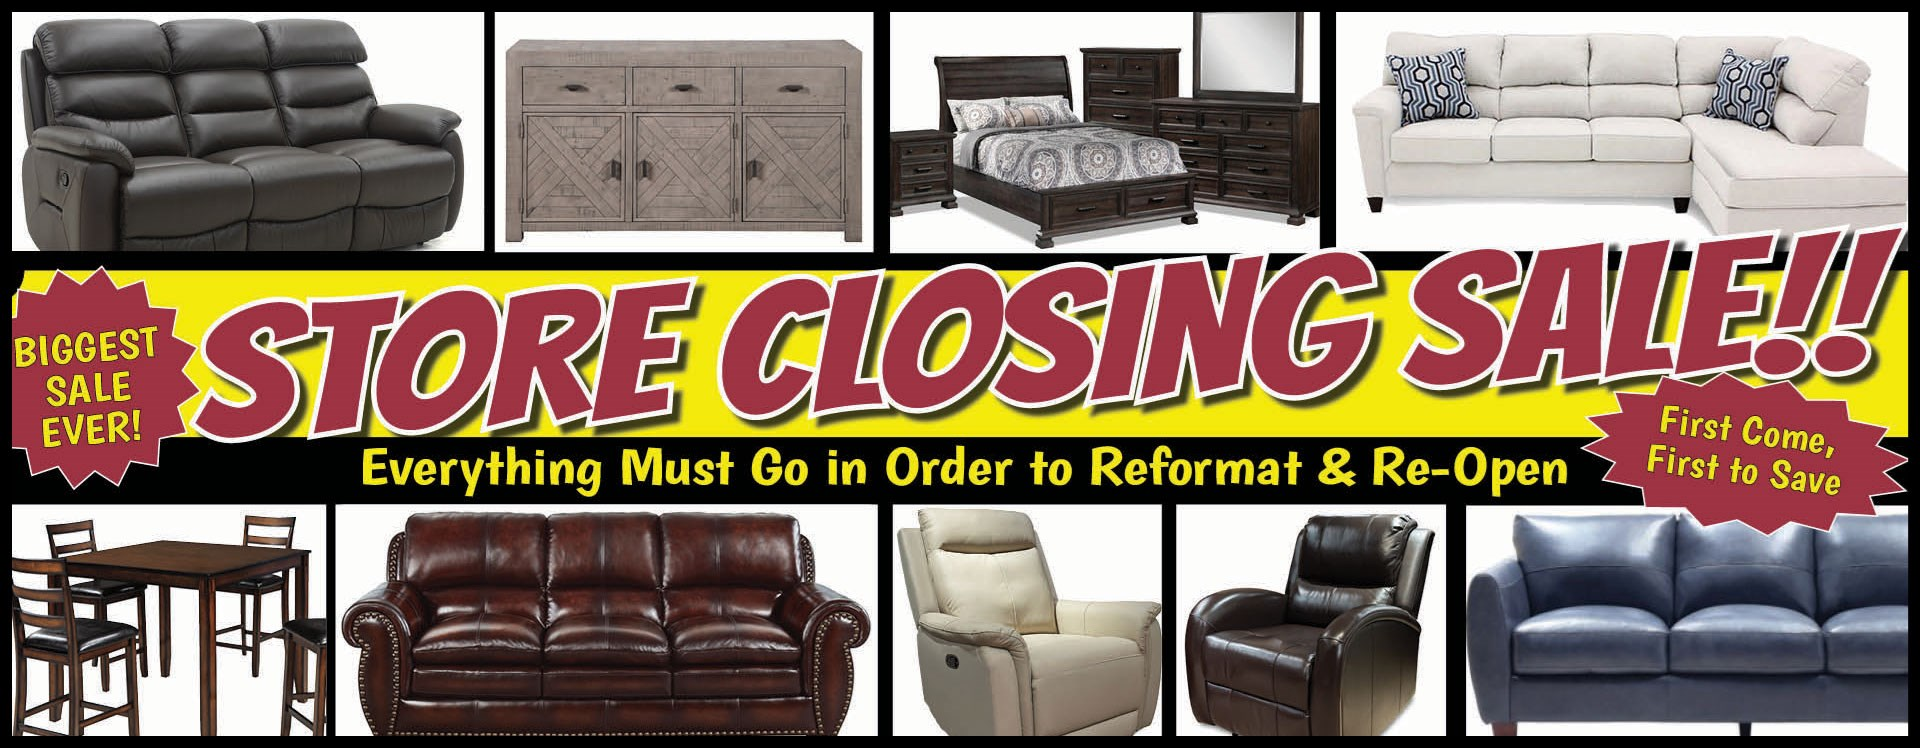 Rotmans Close-to-Remodel Sale